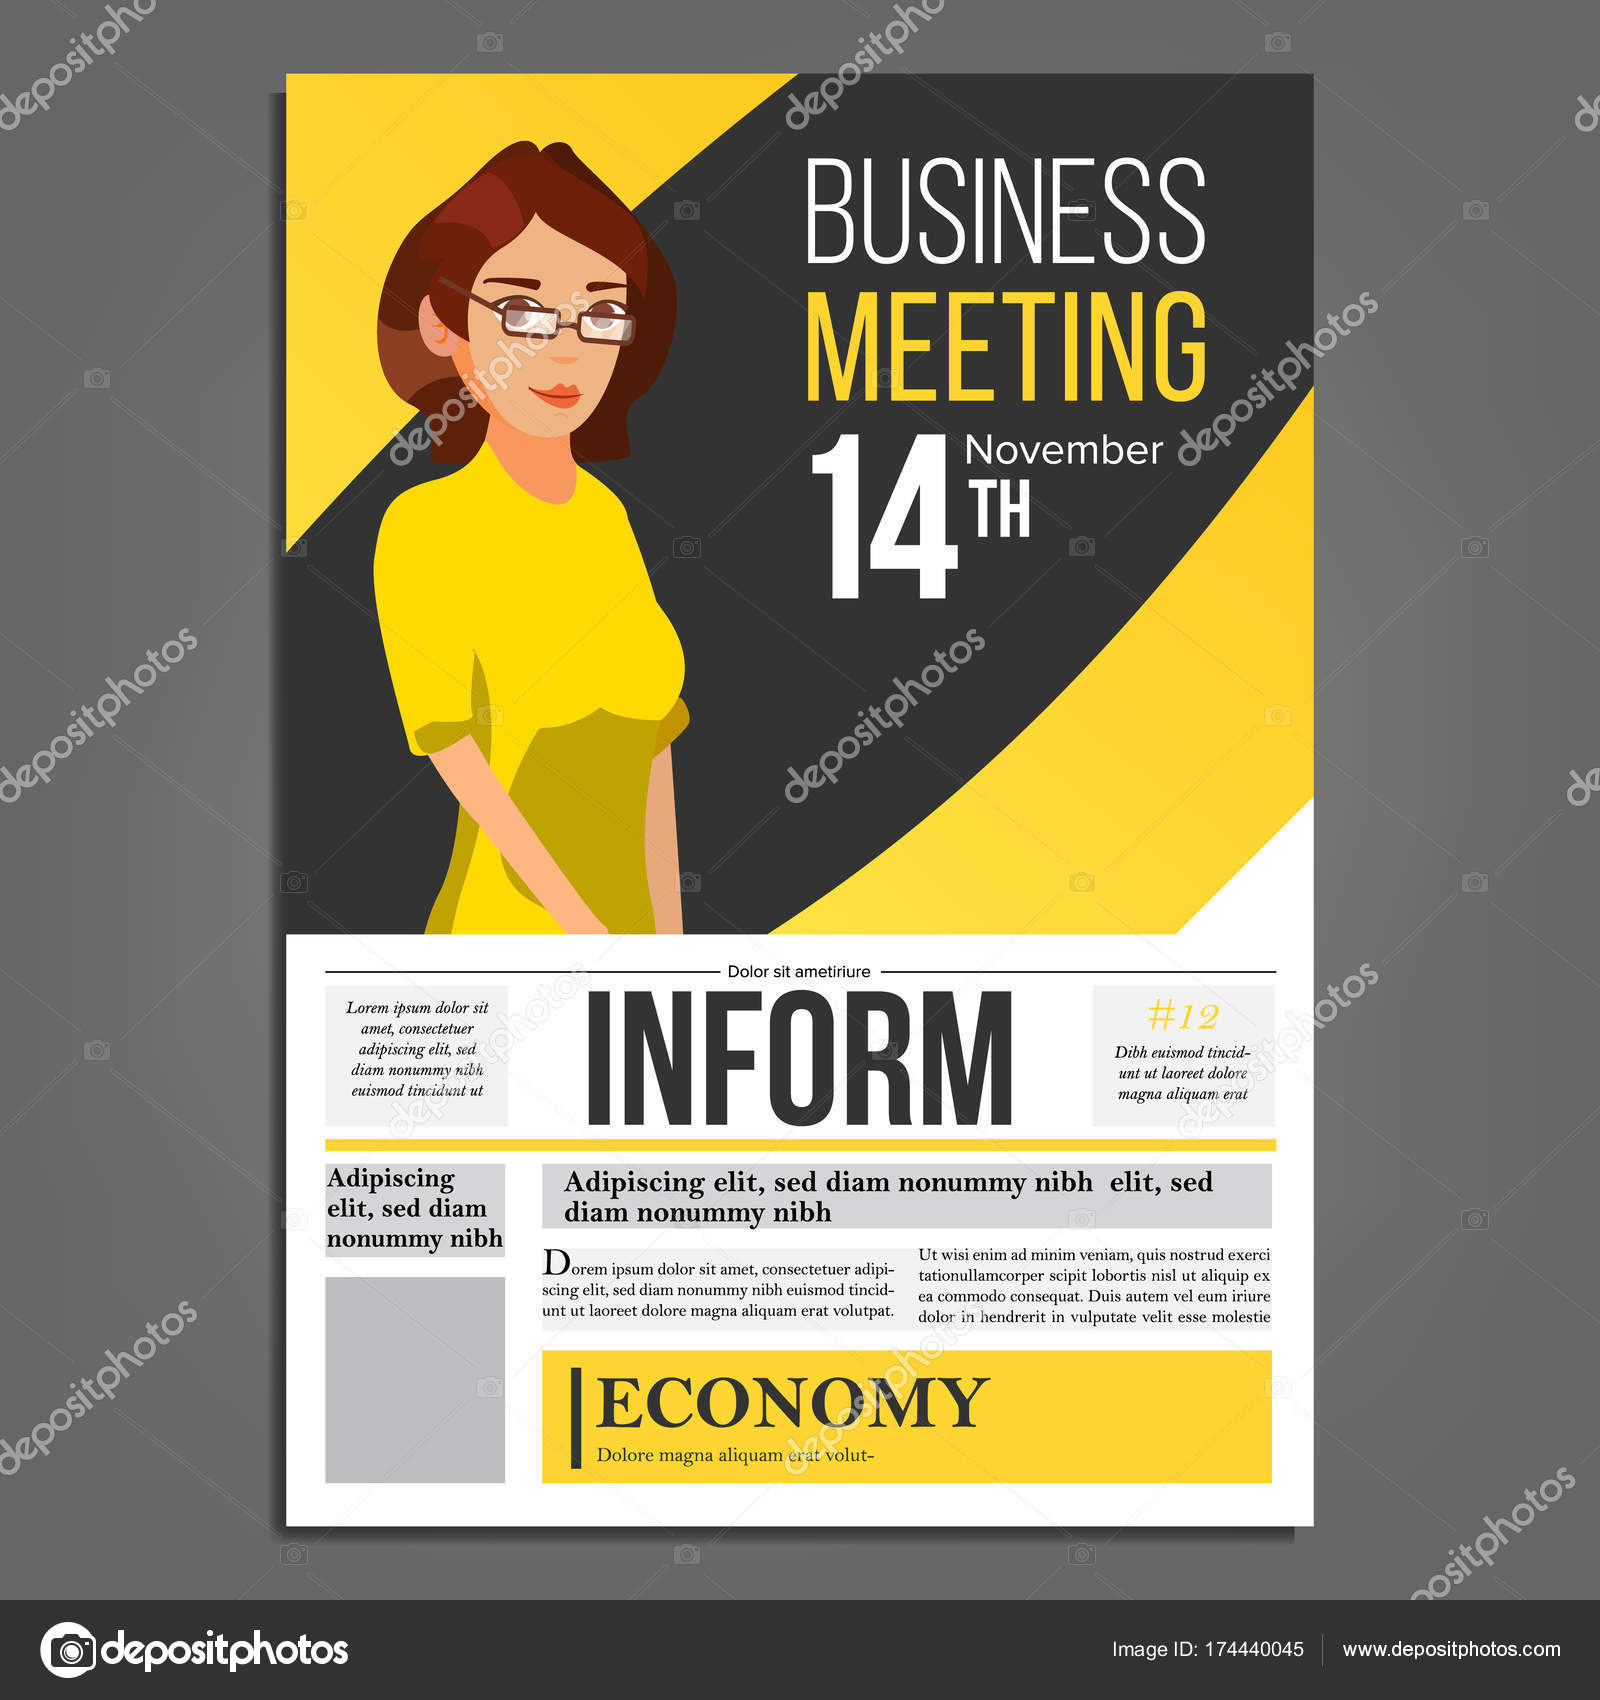 Business Meeting Poster Vektor. Business-Frau. Layout. Präsentations ...